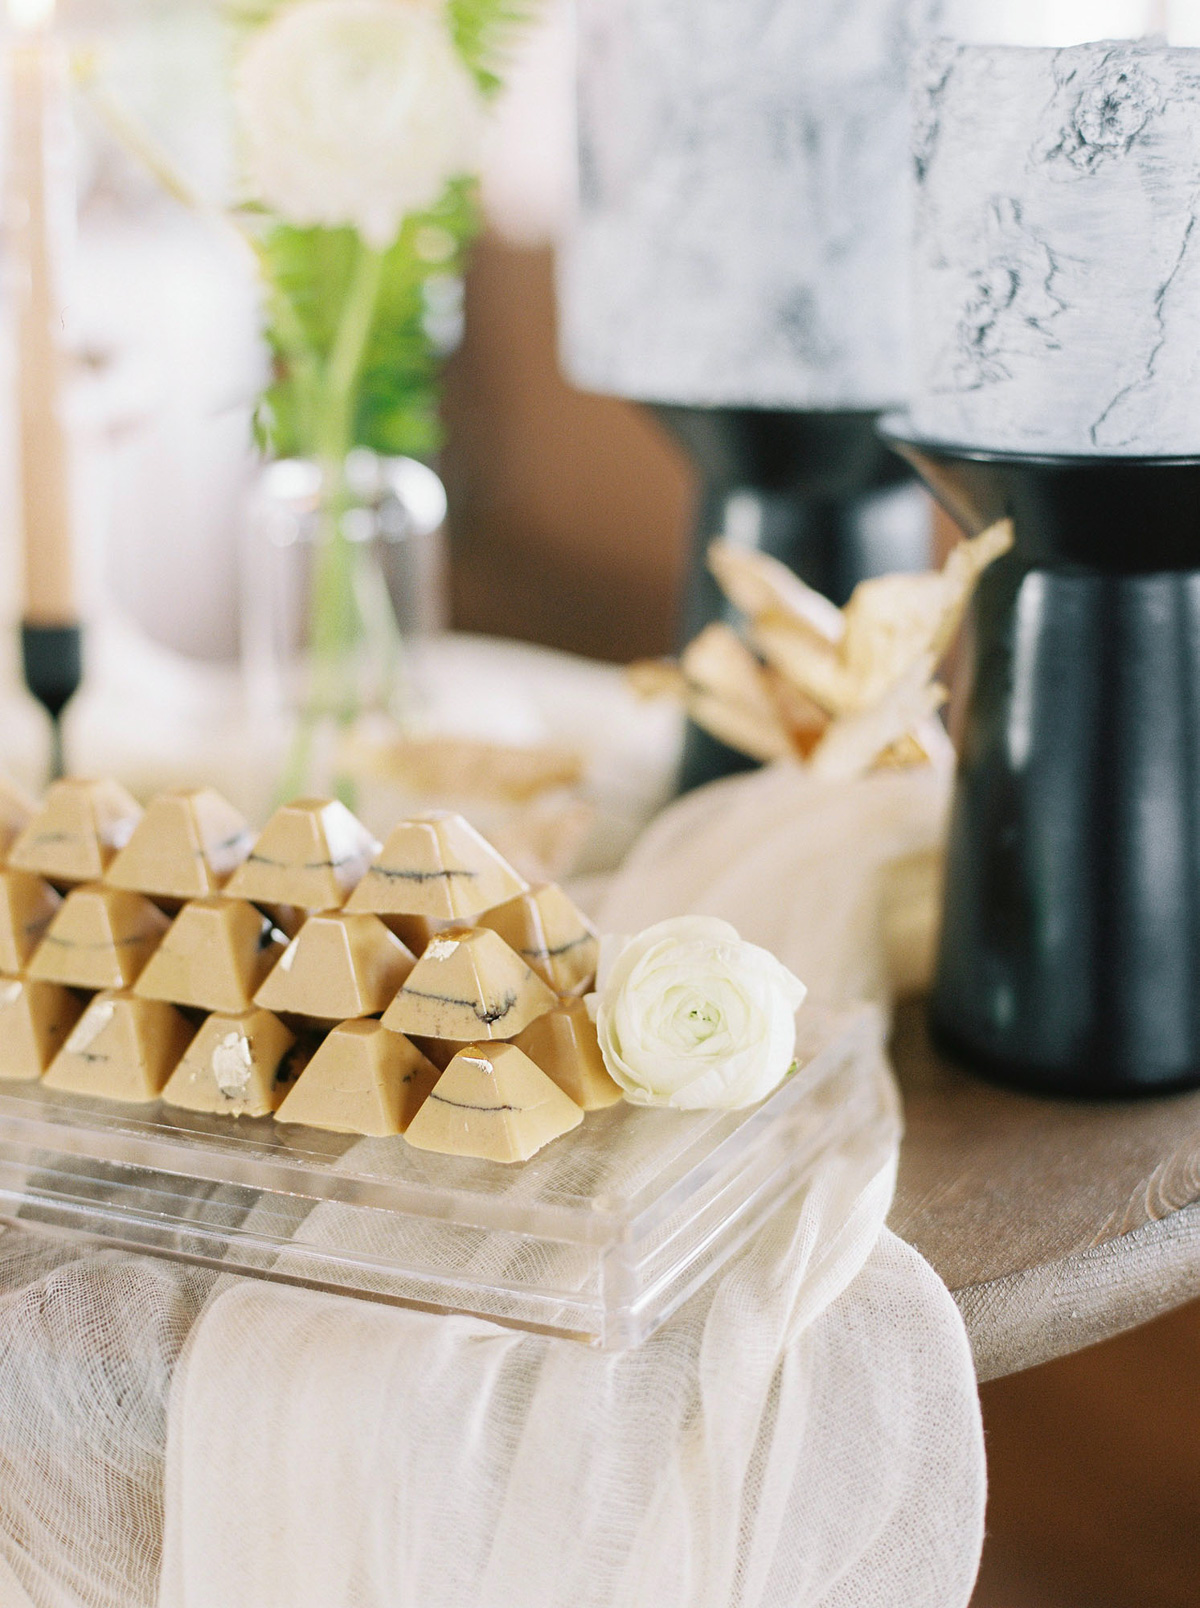 will-reid-photo-vineyard-bride-swish-list-kurtz-orchards-market-niagara-on-the-lake-wedding-editorial-40.jpg